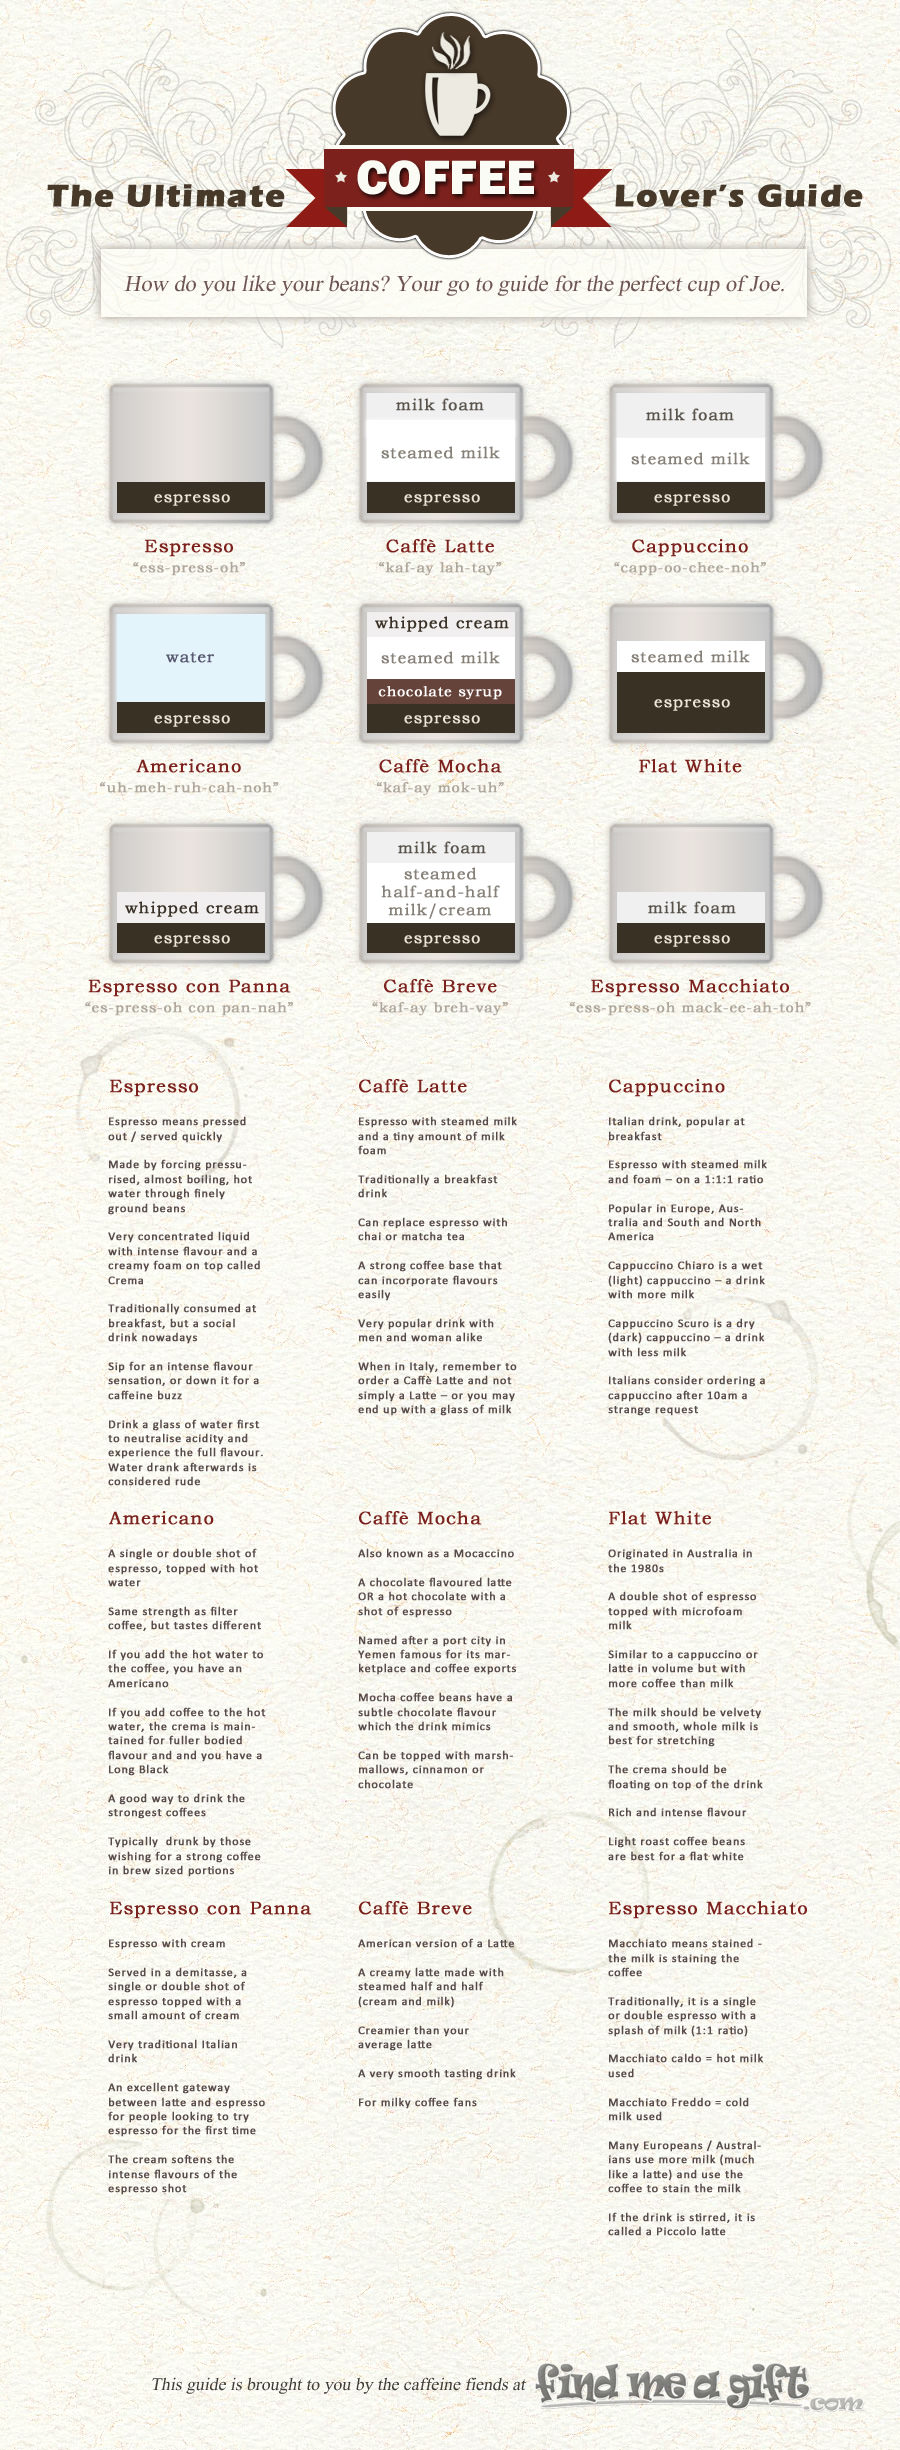 The Ultimate Coffee Lovers Guide